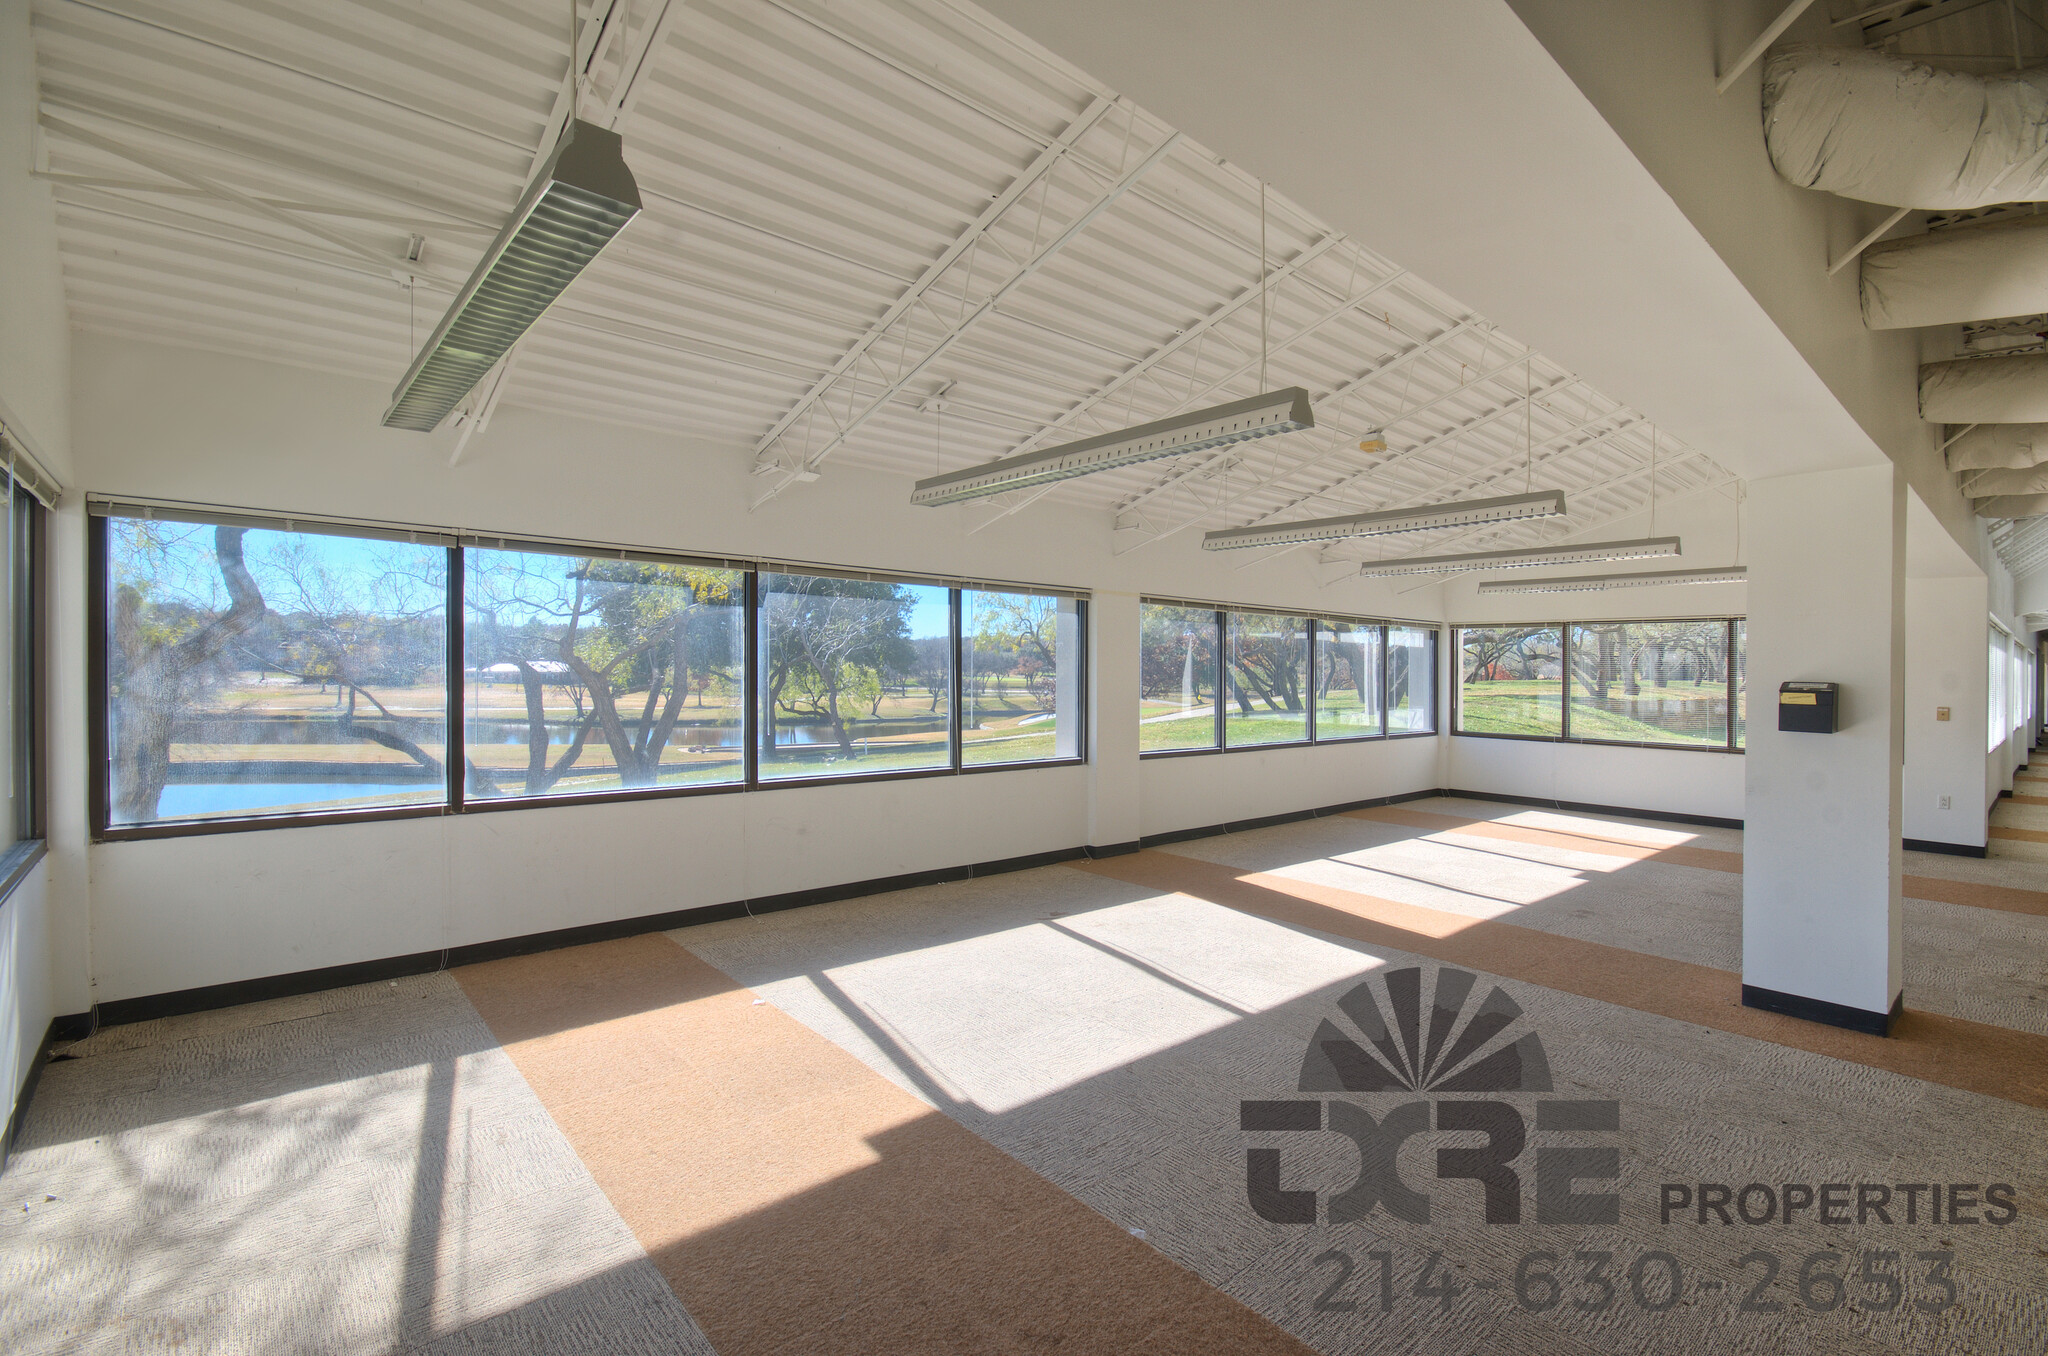 300 Decker Dr. overlooking walking trail and ponds